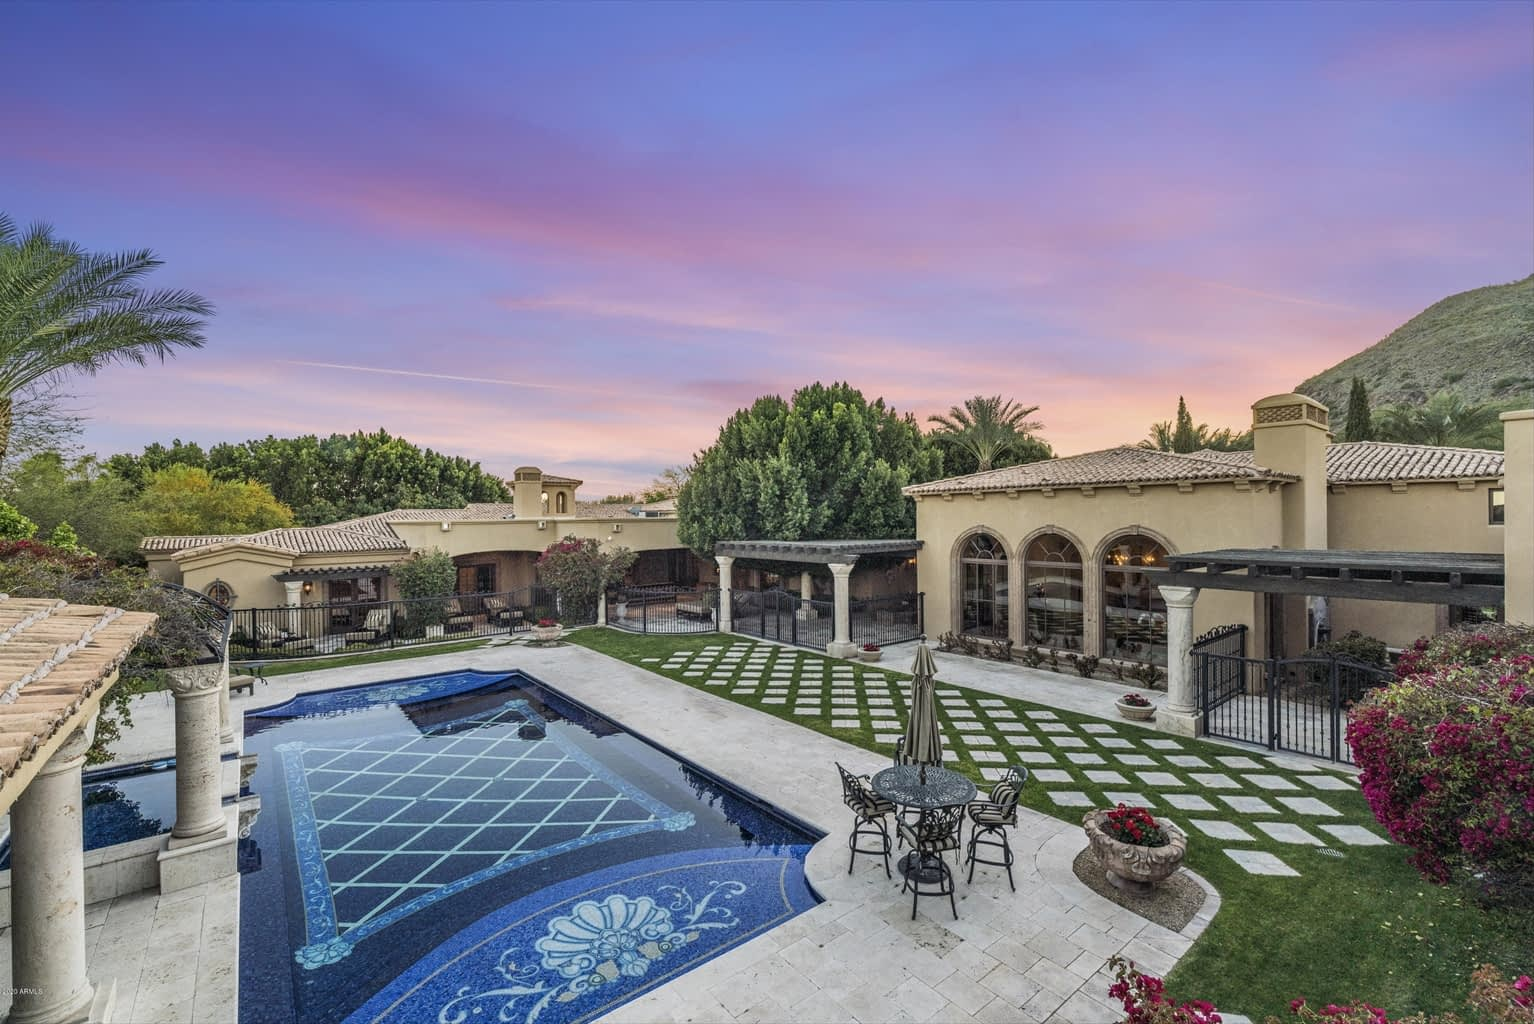 Luxury Mosaic Pool with Diamond shaped design on floor with outdoor Area